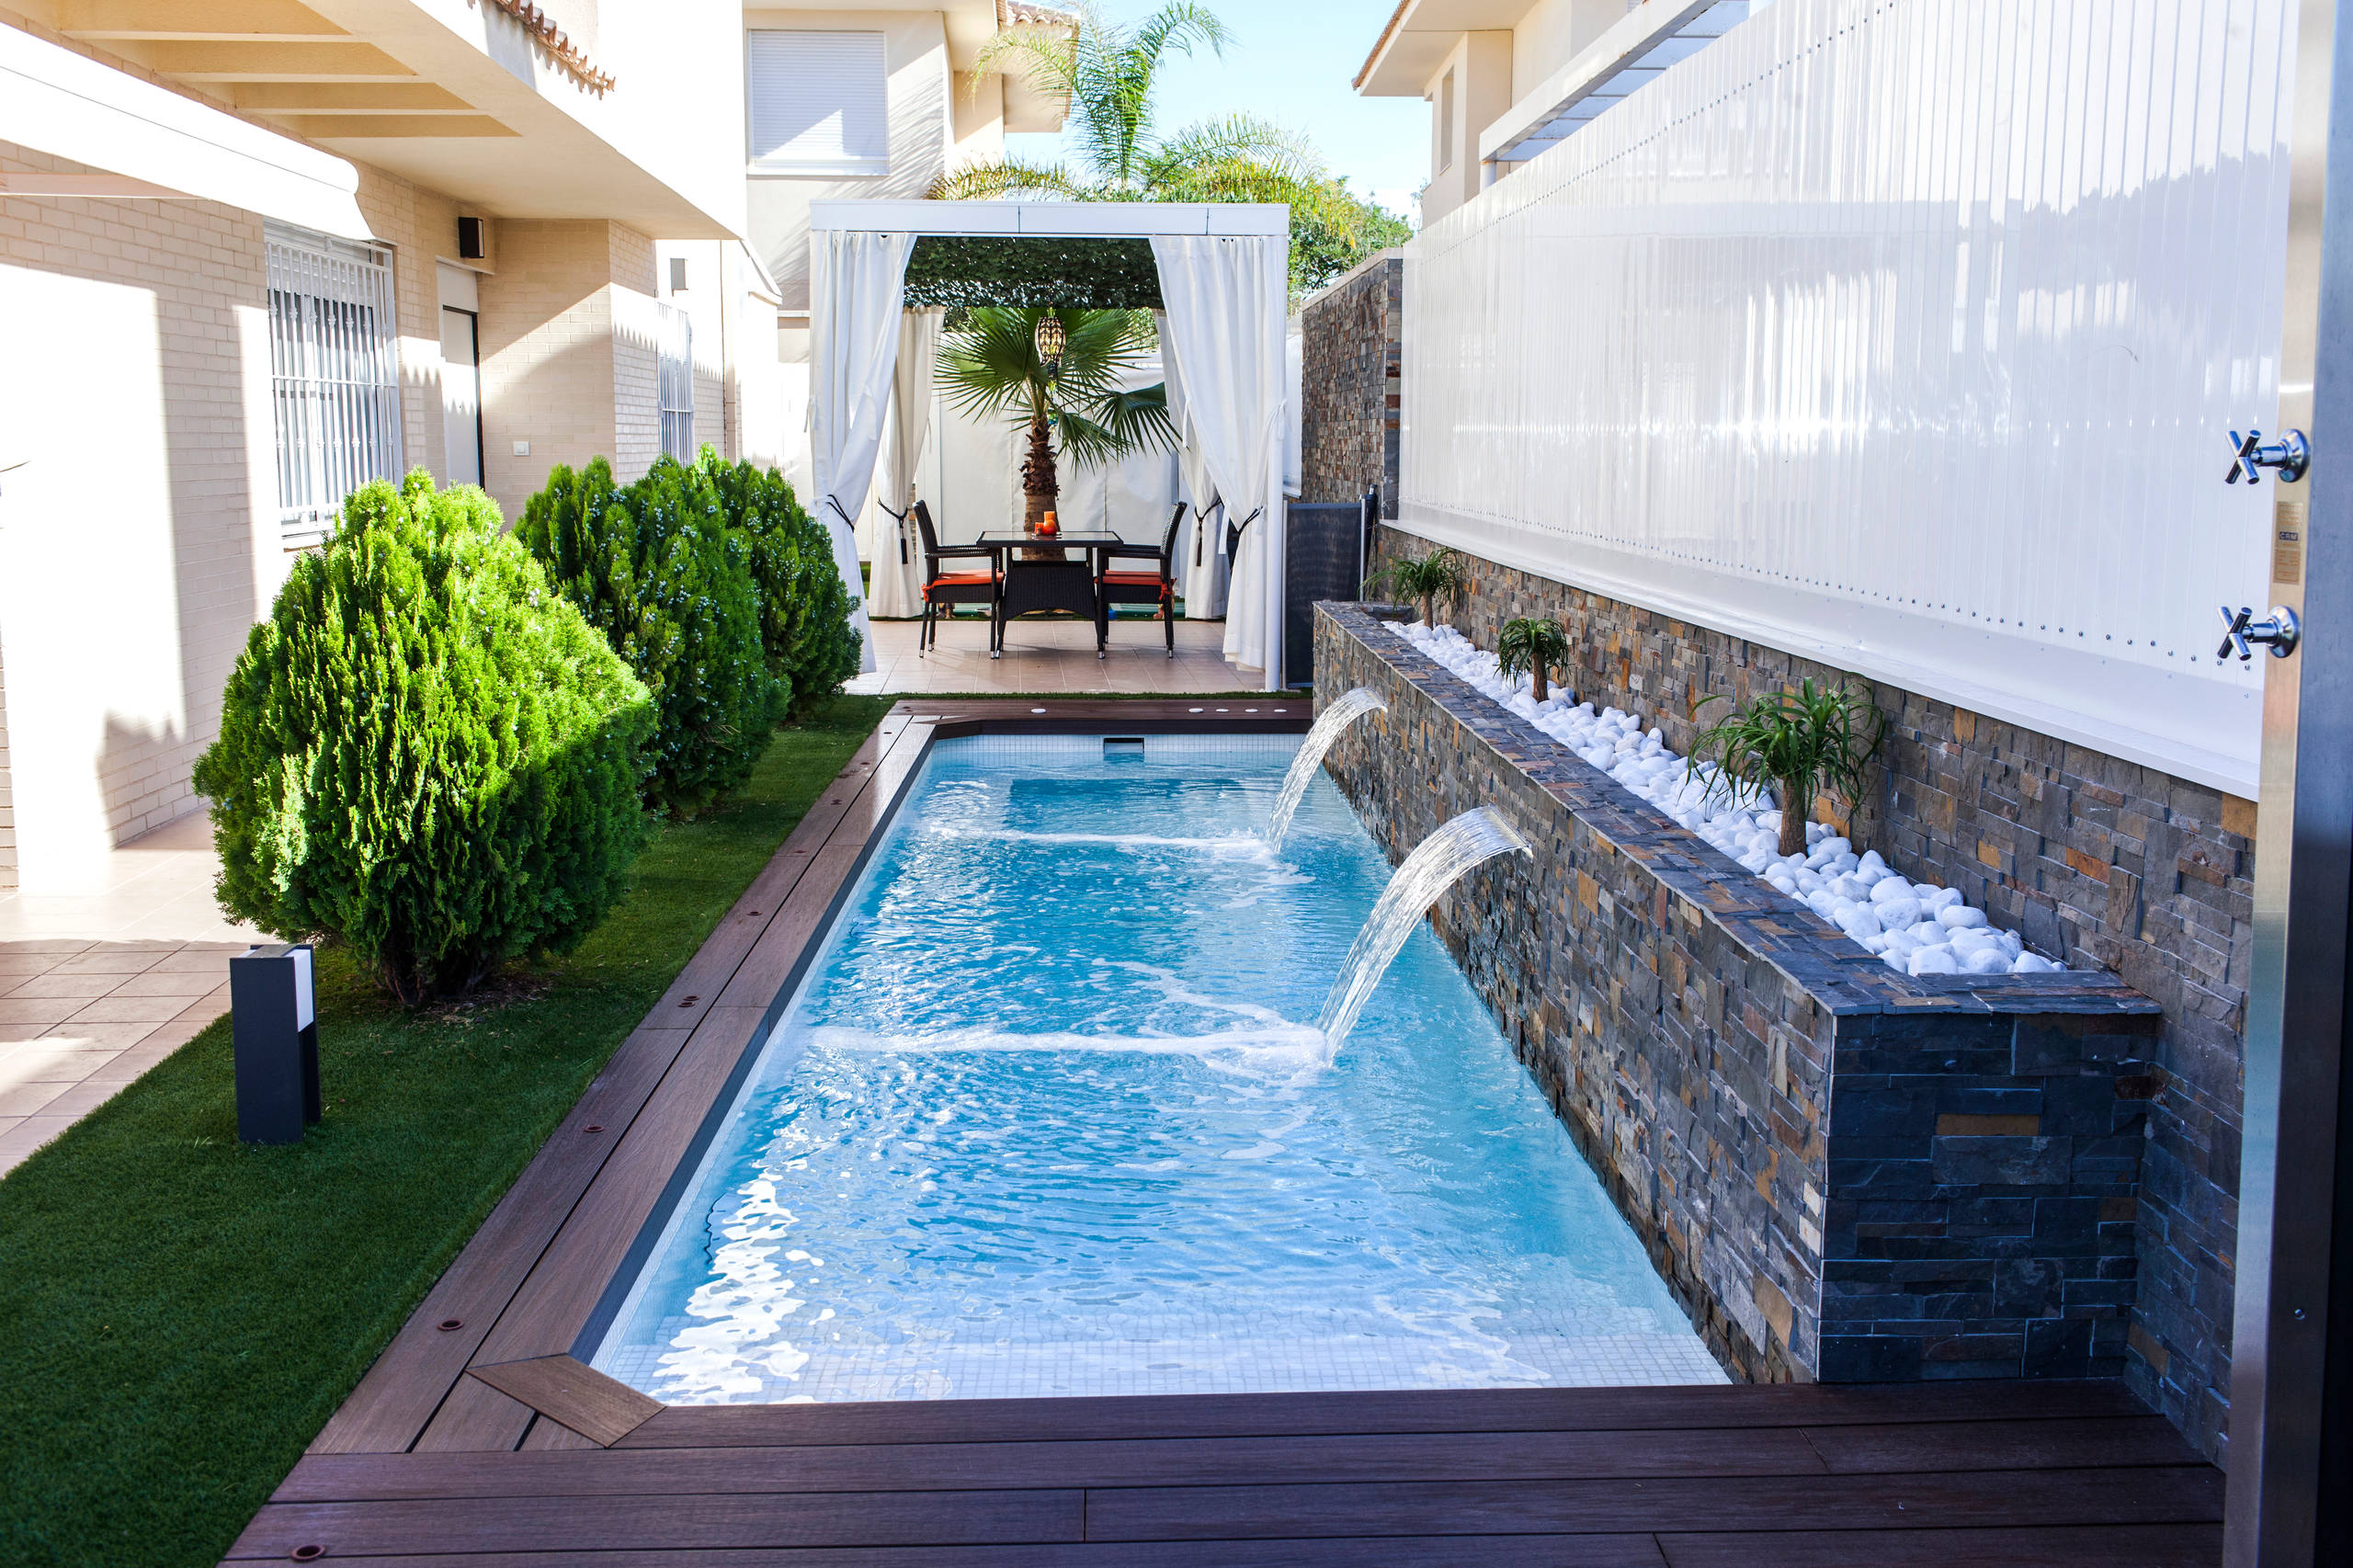 75 Beautiful Side Yard Pool Pictures Ideas March 2021 Houzz